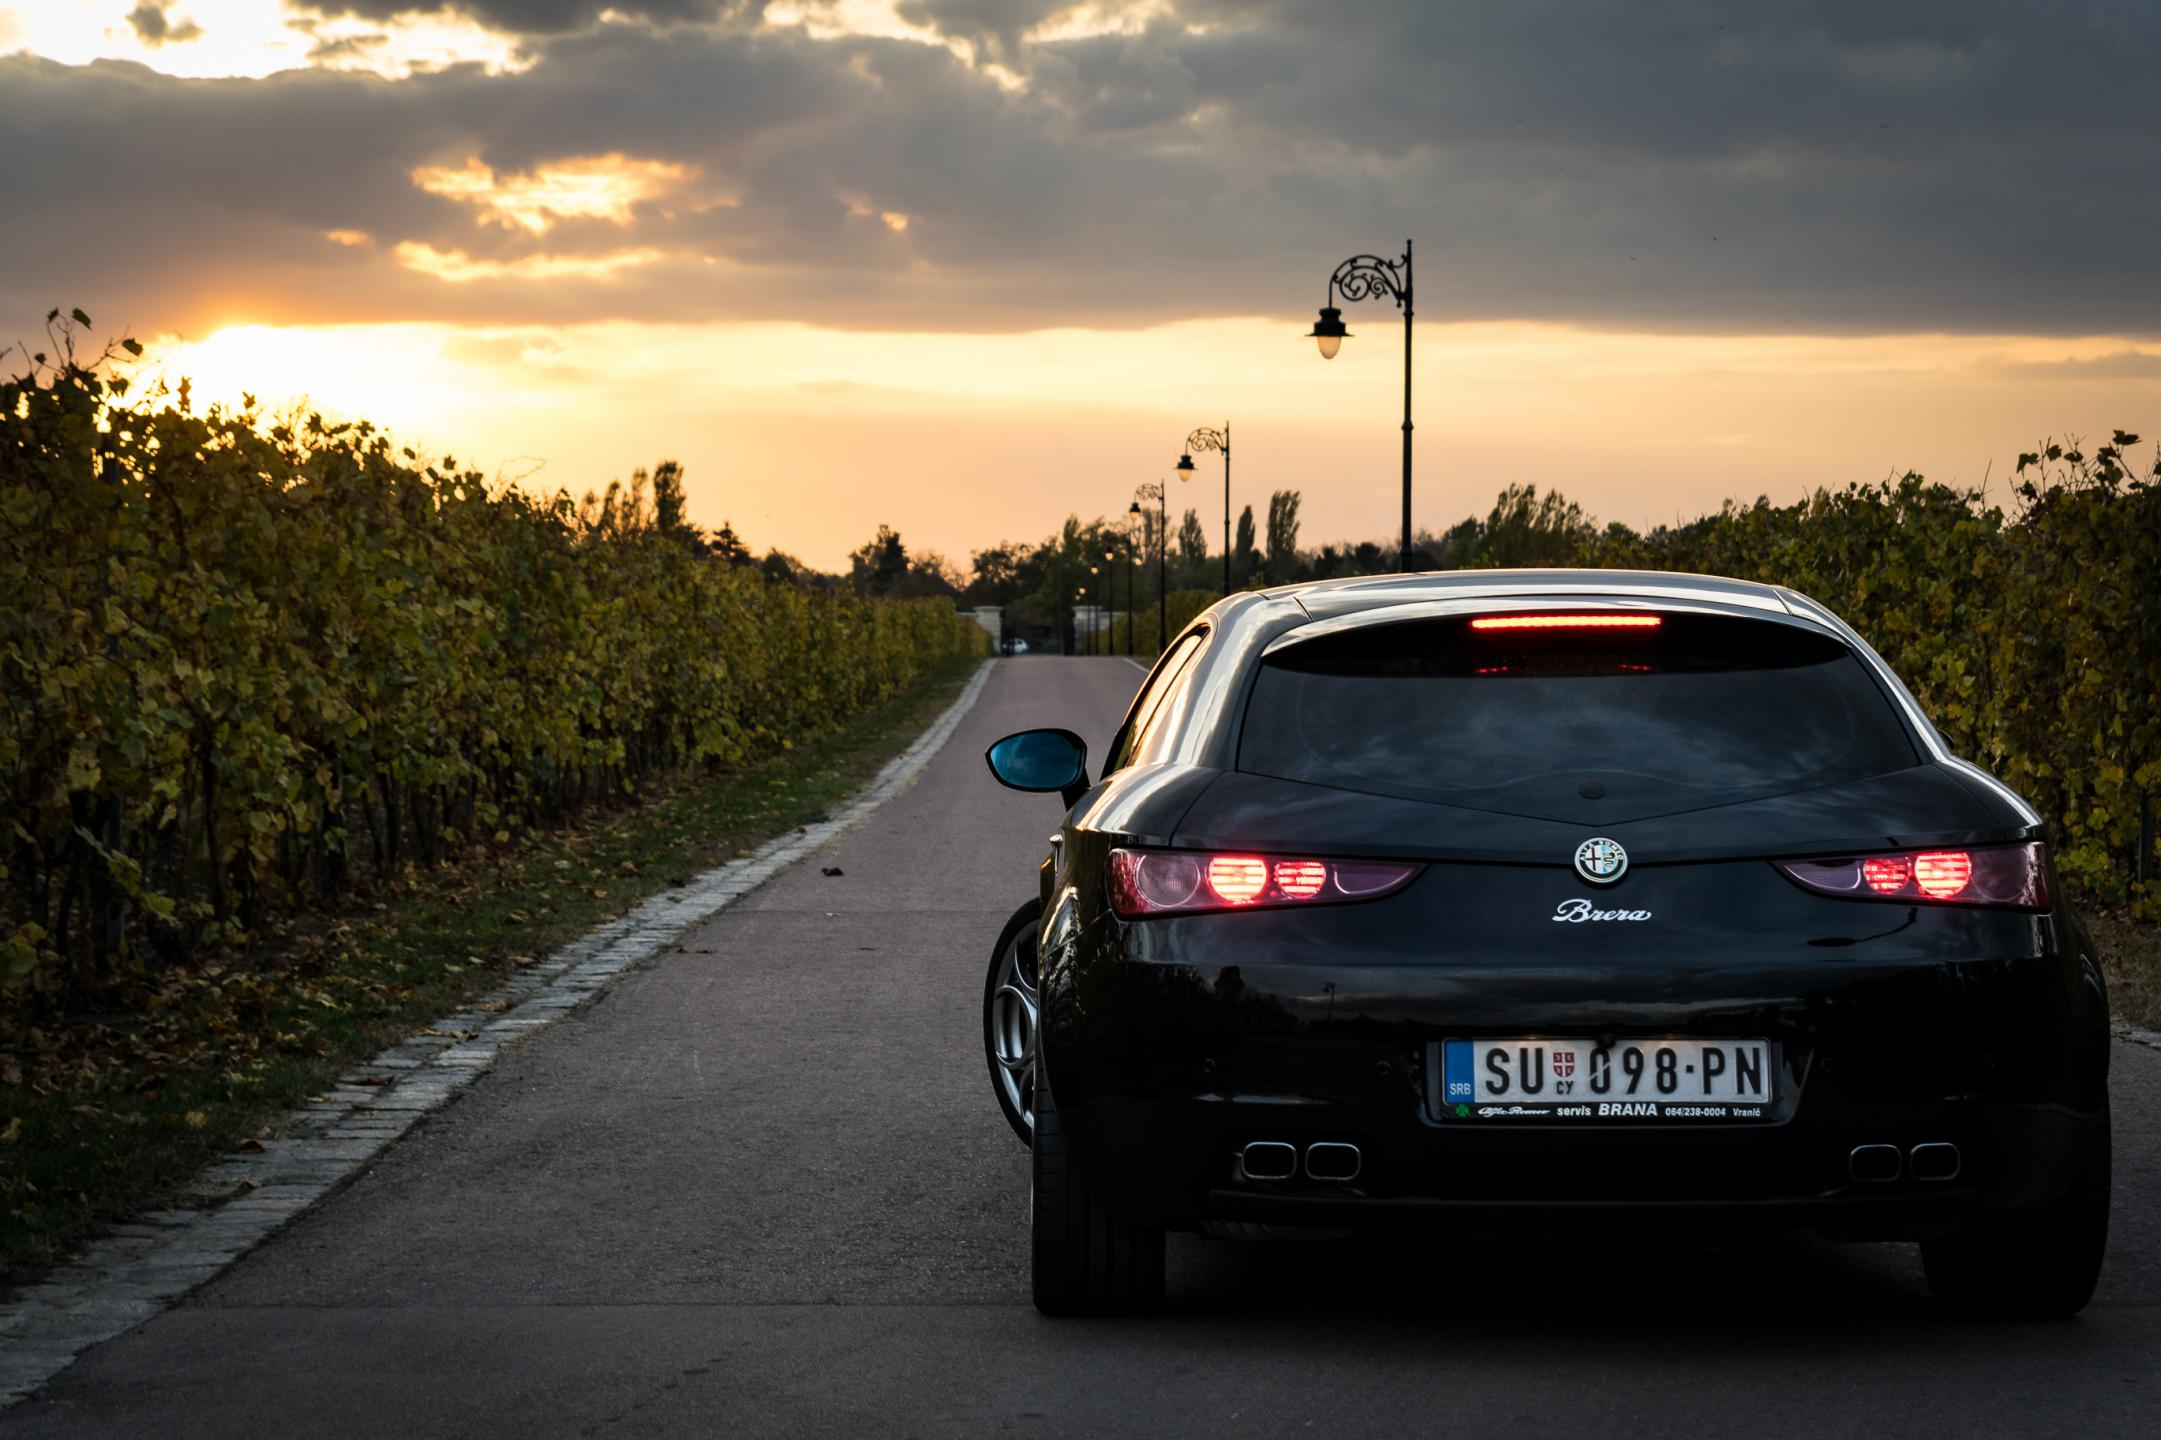 horvat s Content Page 4 Fiat Lancia Club Serbia Forum